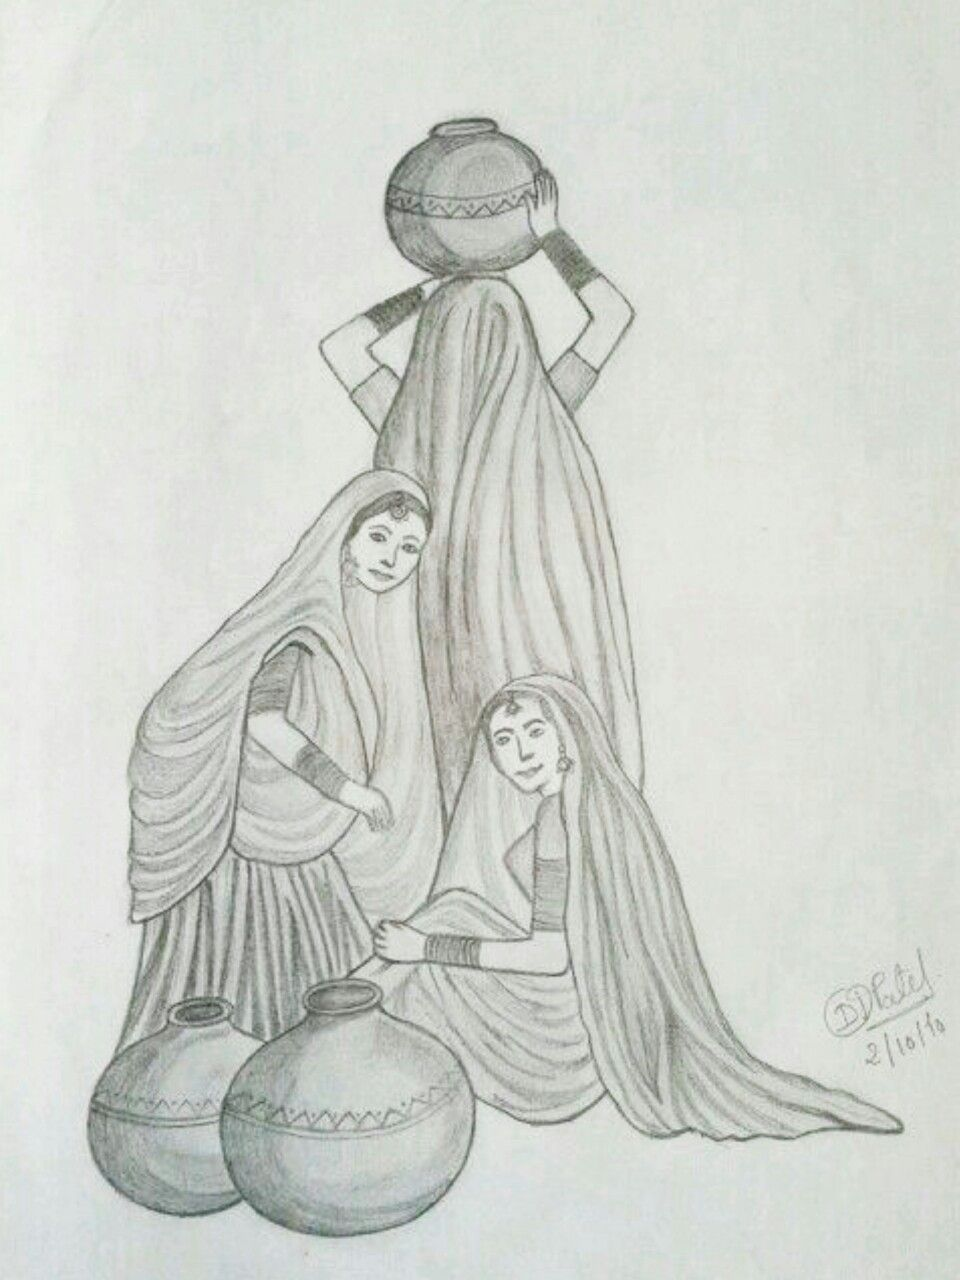 Village women panihari drawing girl drawing sketches drawing ideas